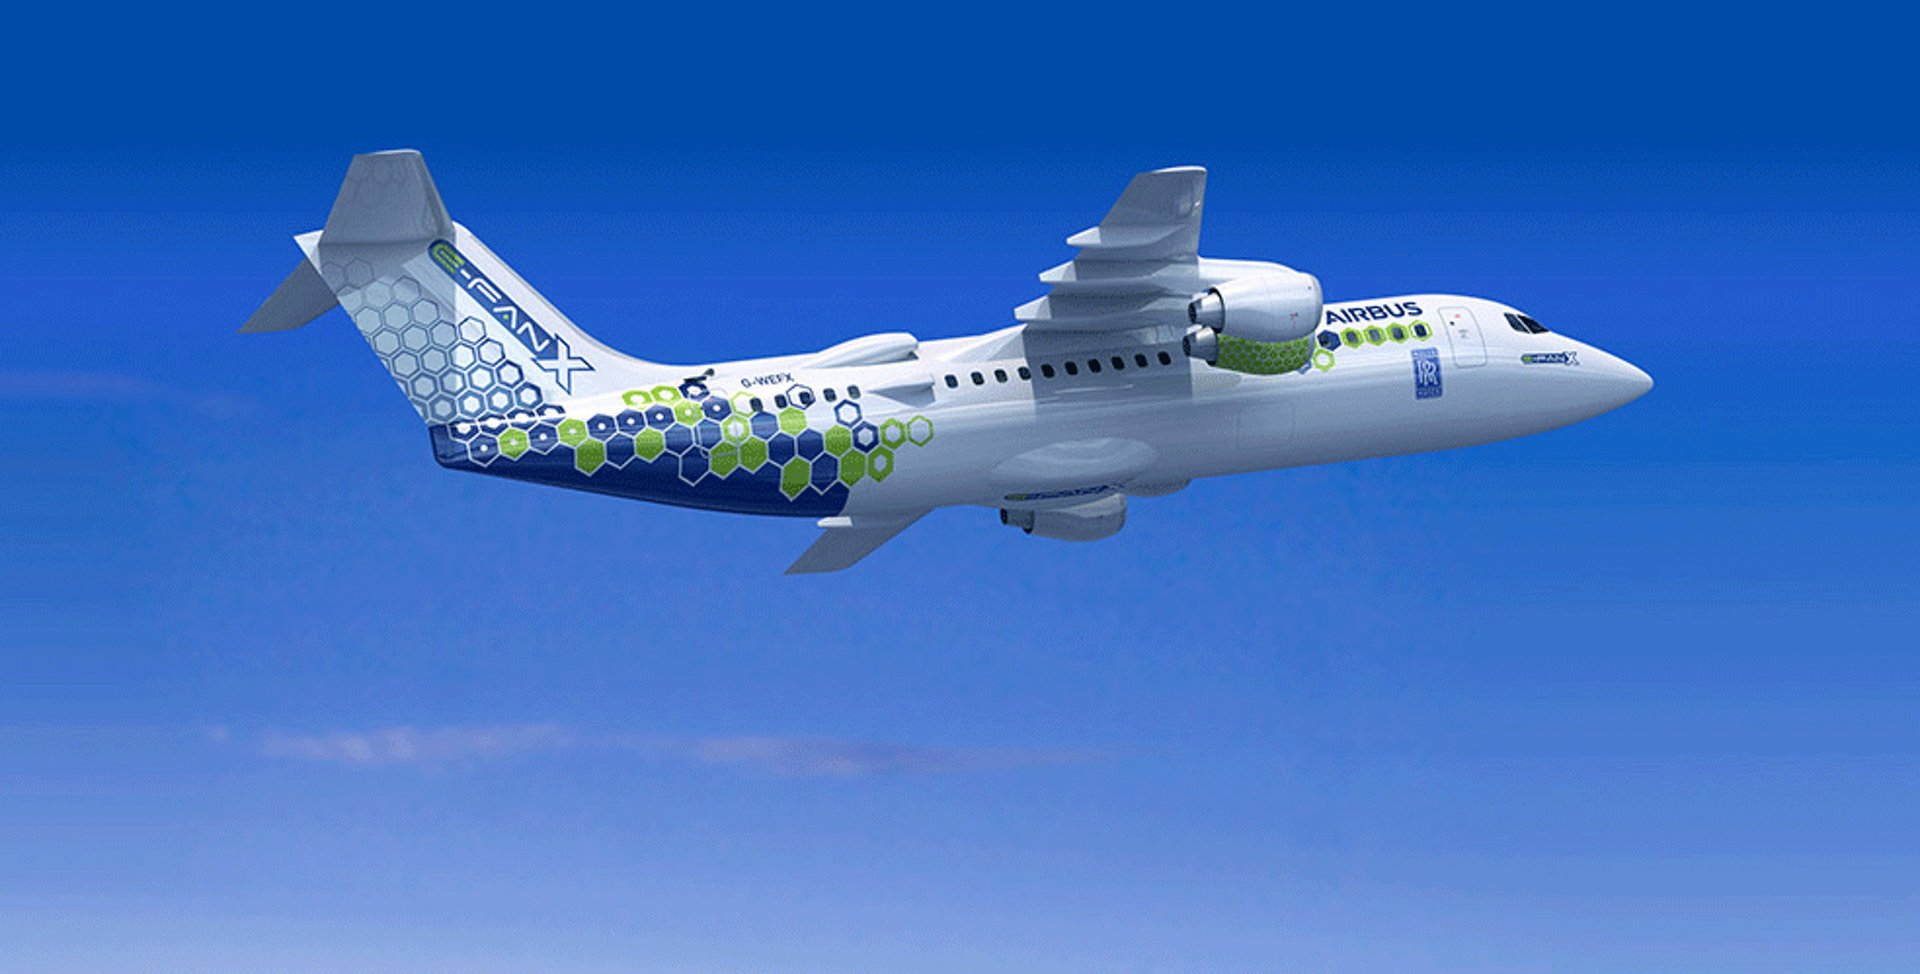 A representation of Airbus' E-Fan X hybrid-electric aircraft in flight.